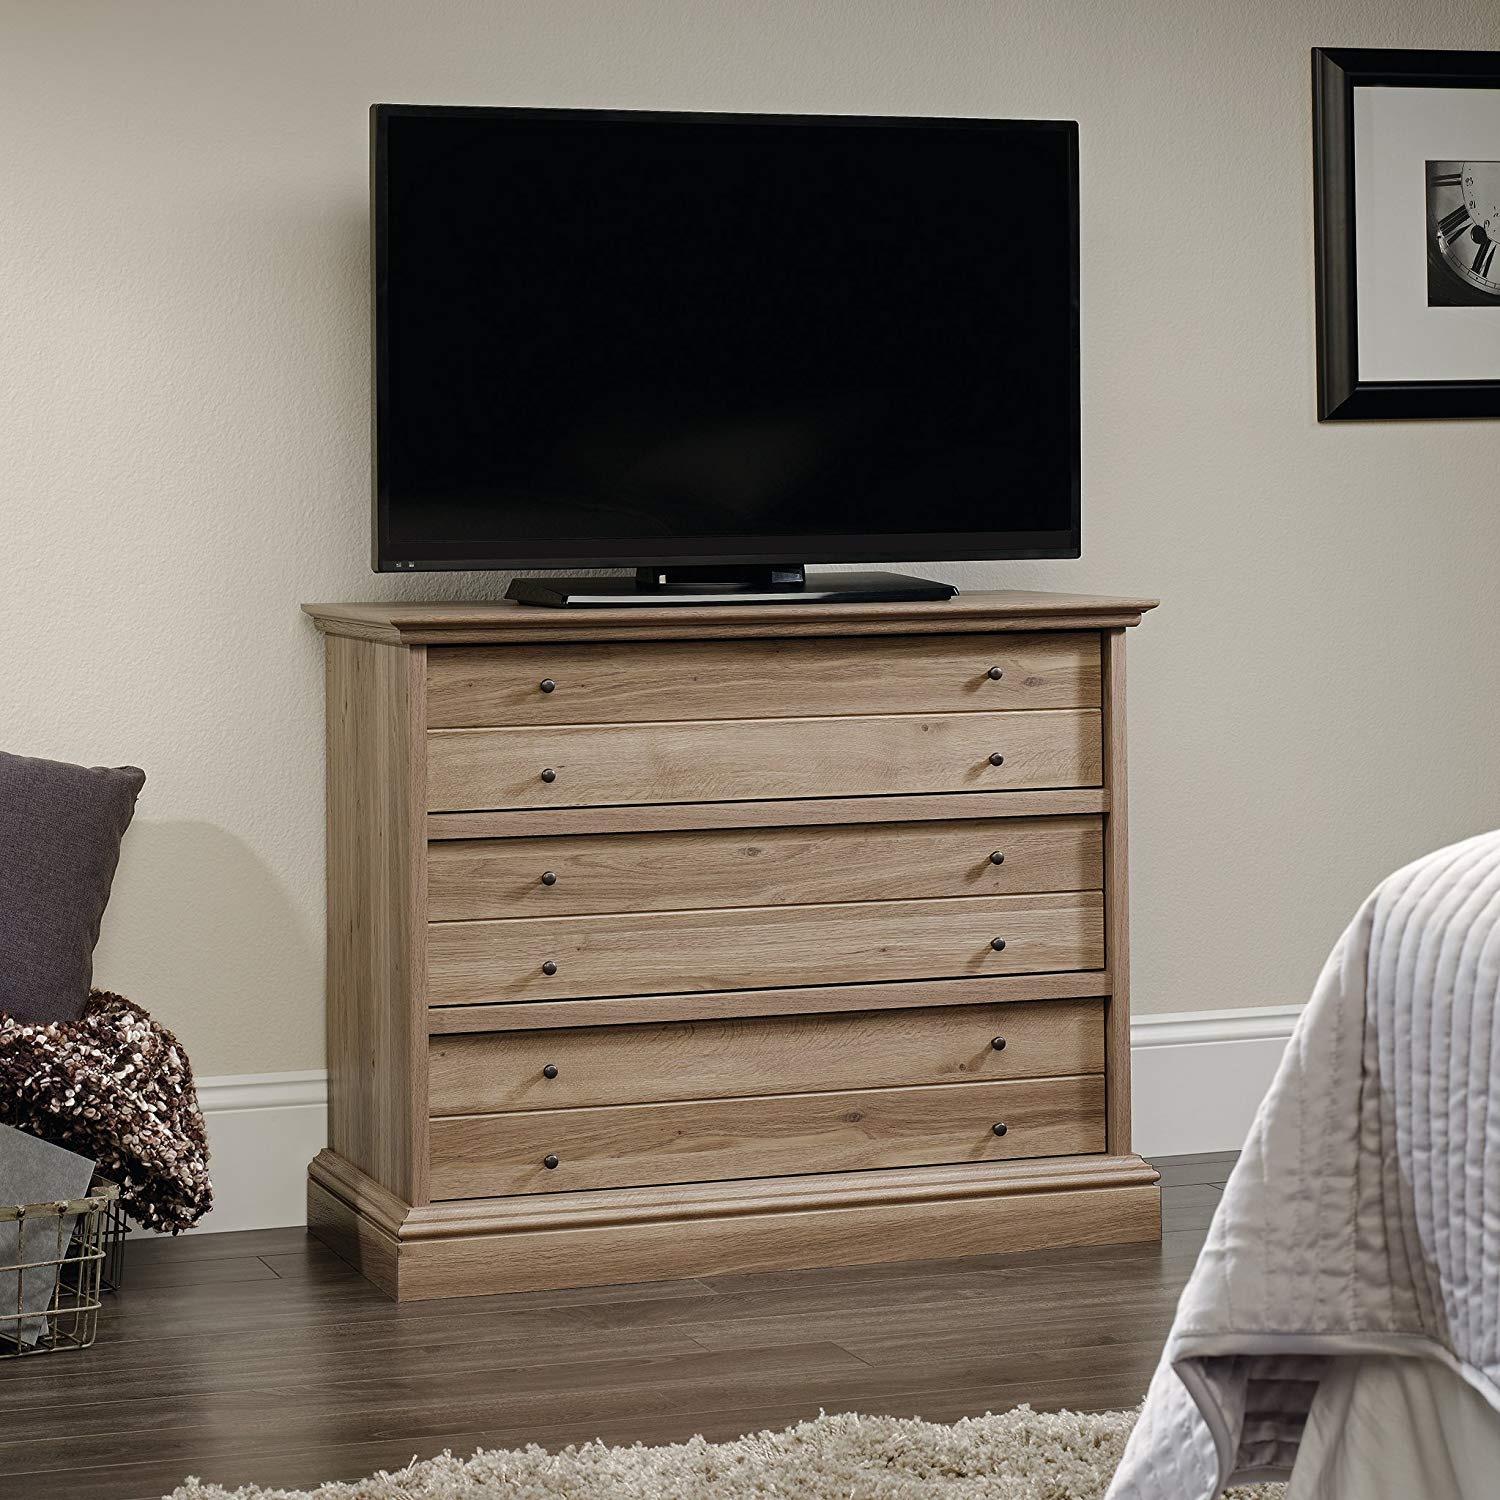 TV on Sauder Bedroom Chest Of Drawers